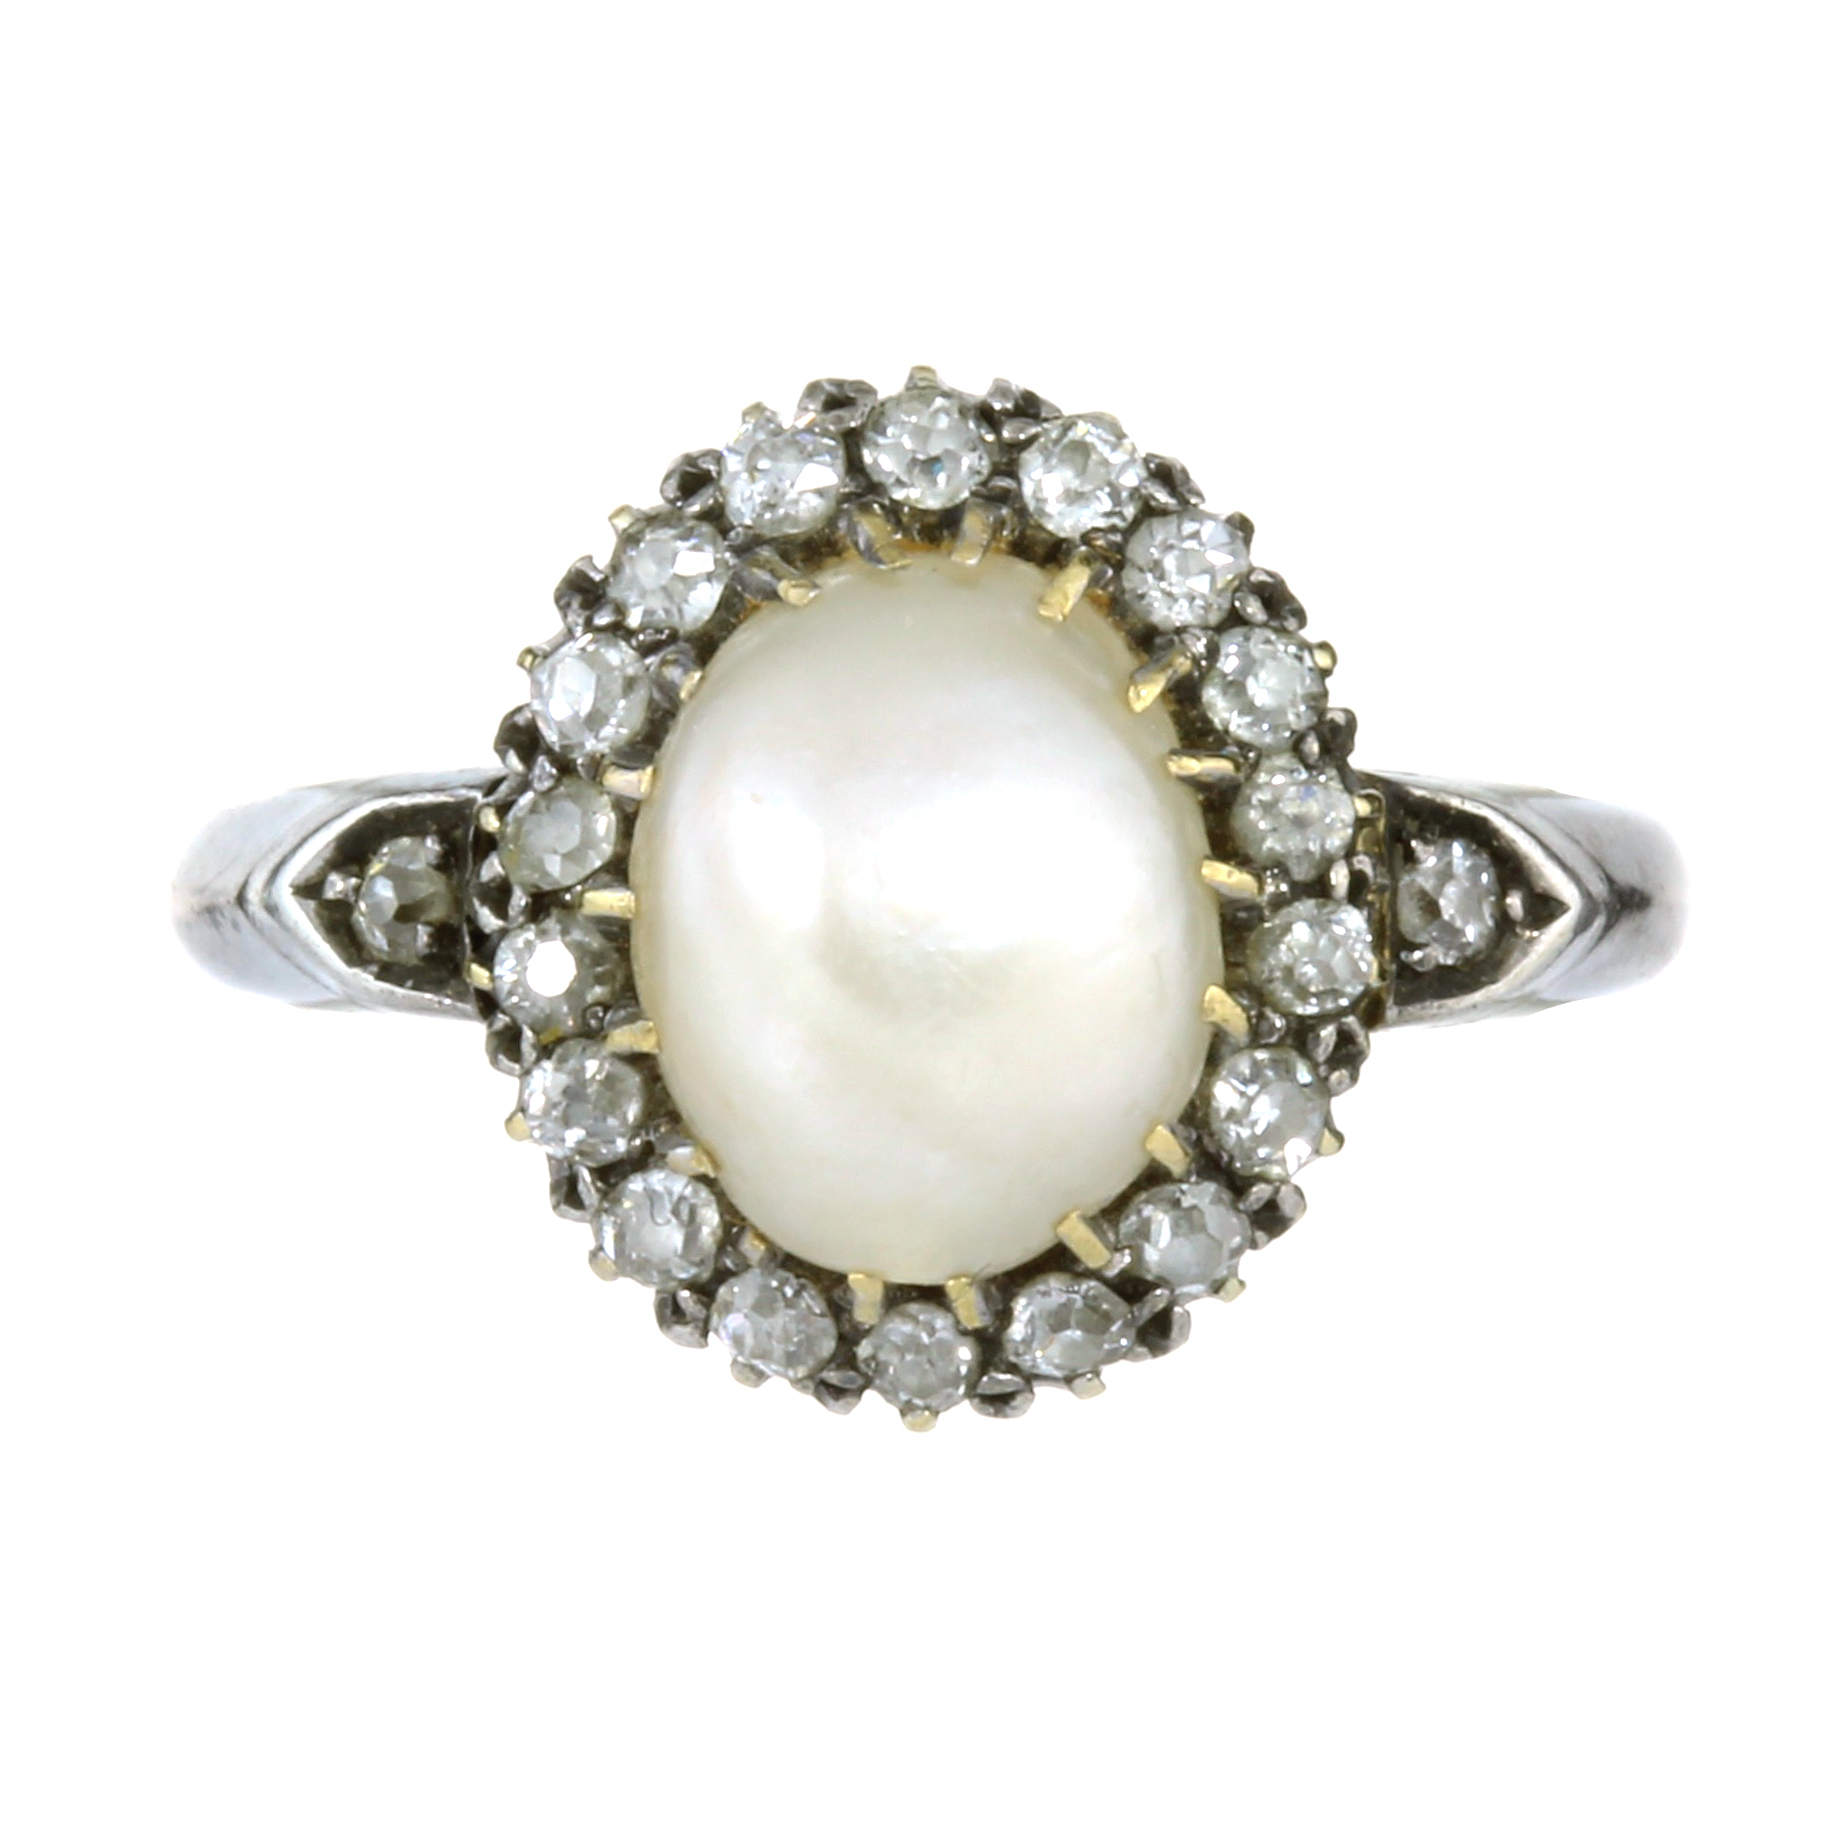 AN ANTIQUE NATURAL SALTWATER PEARL AND DIAMOND CLUSTER RING in yellow and white gold, set with a